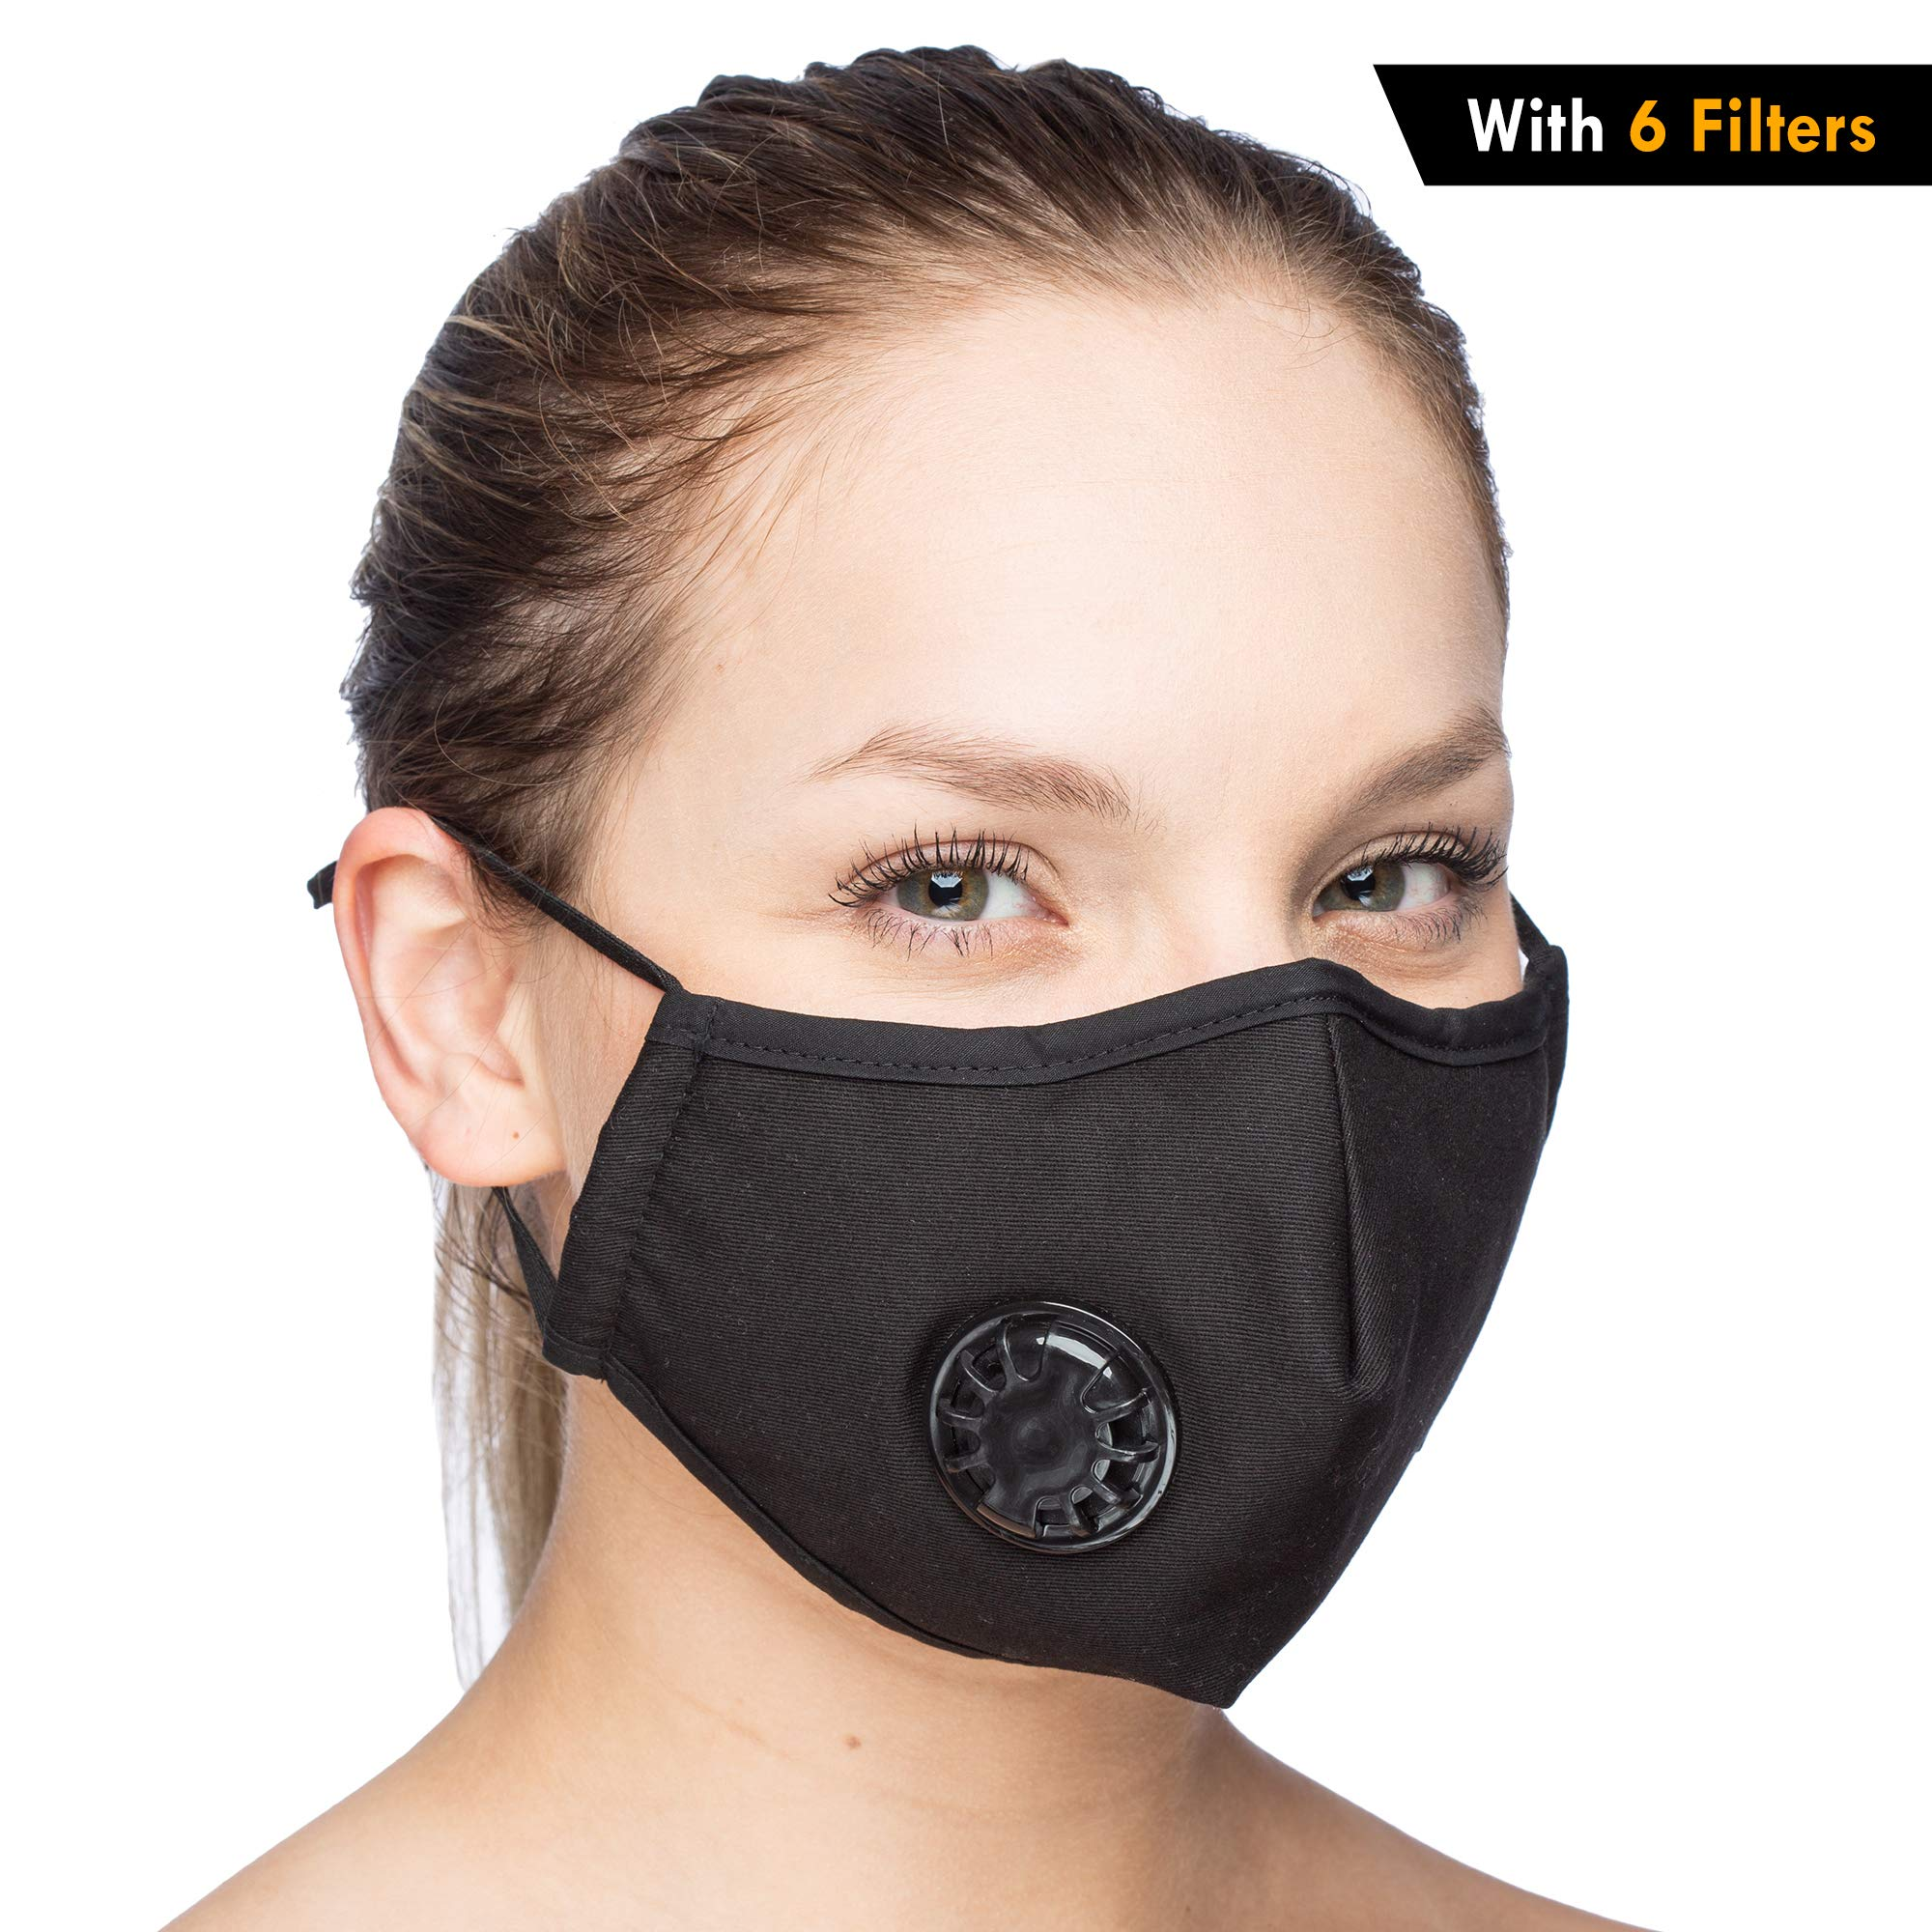 One Mask + 6 Filters Military Grade N99 Carbon Activated Anti Dust Face Mouth Cover Mask Respirator-Dustproof Anti-bacterial Washable -Reusable Respirator Comfy-Cotton Face Mask (N99 Mask - Black)